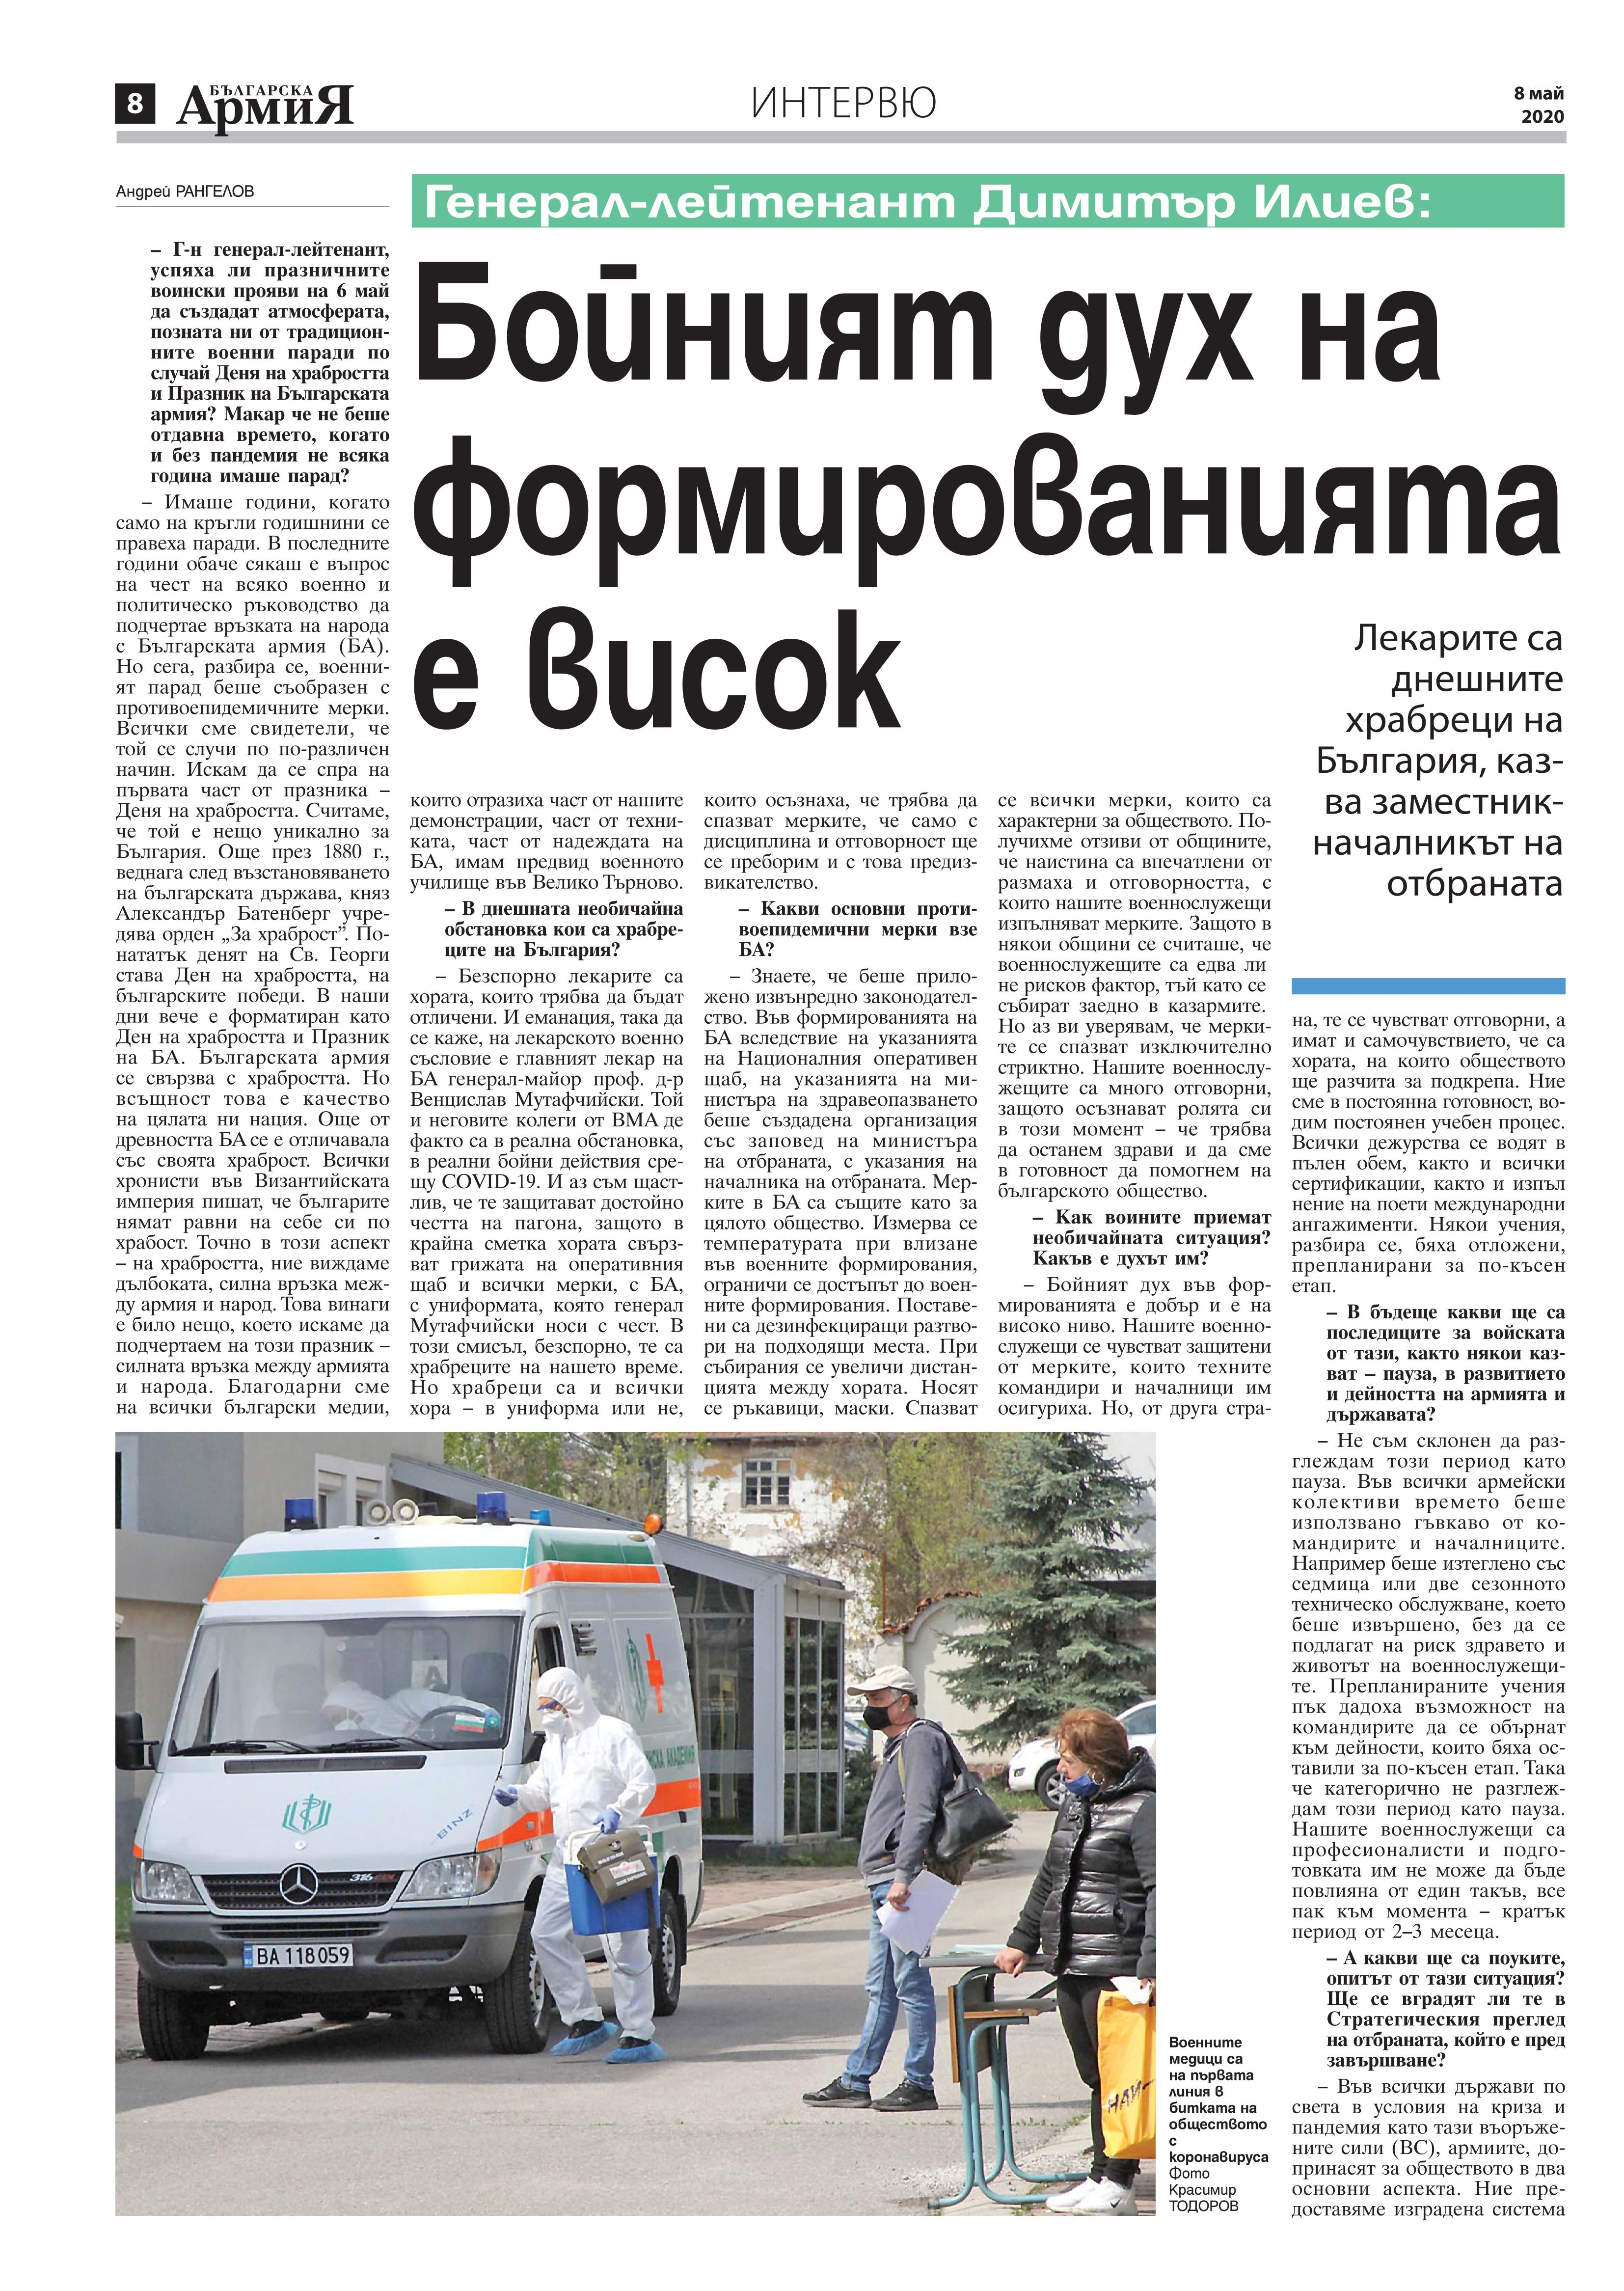 https://armymedia.bg/wp-content/uploads/2015/06/08.page1_-135.jpg